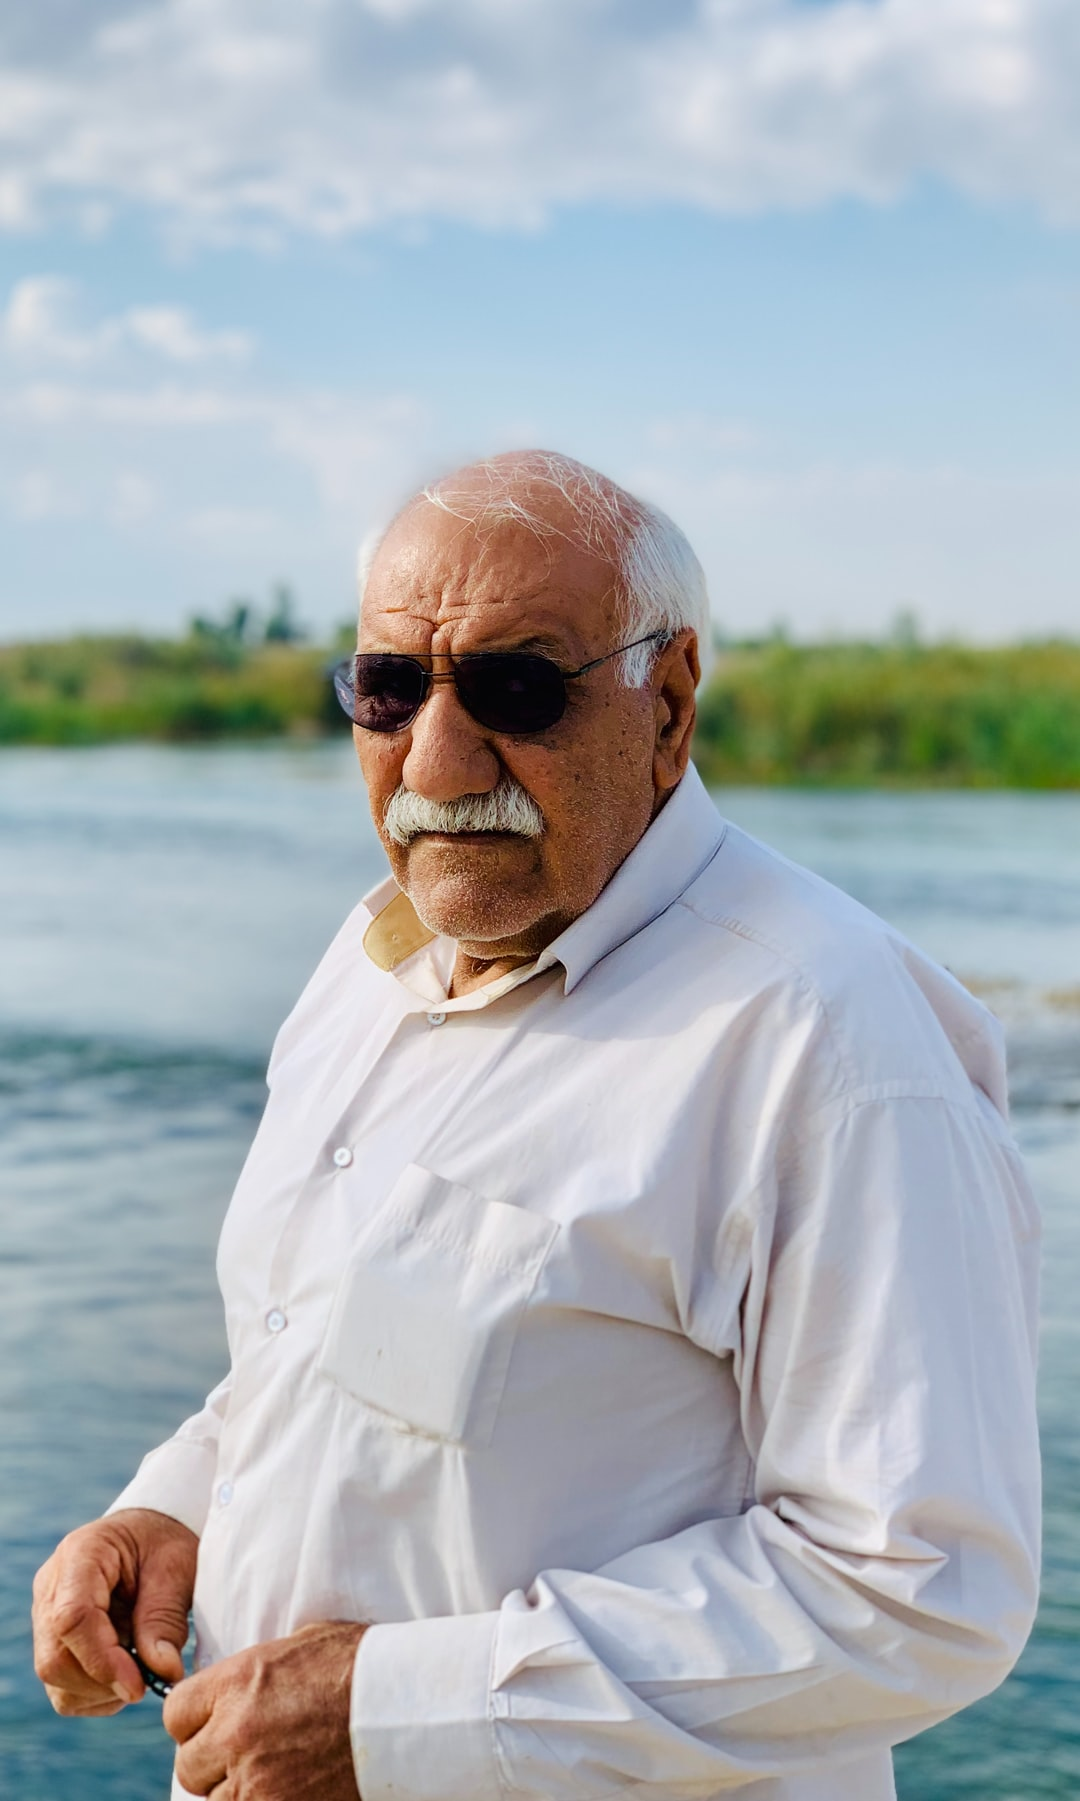 An Old Gentleman, My father  I took a photo from my father on a bridge constructed during the Iran and Iraq war. He works here at that time. If you use the photo, Please note to me@abbasm.com